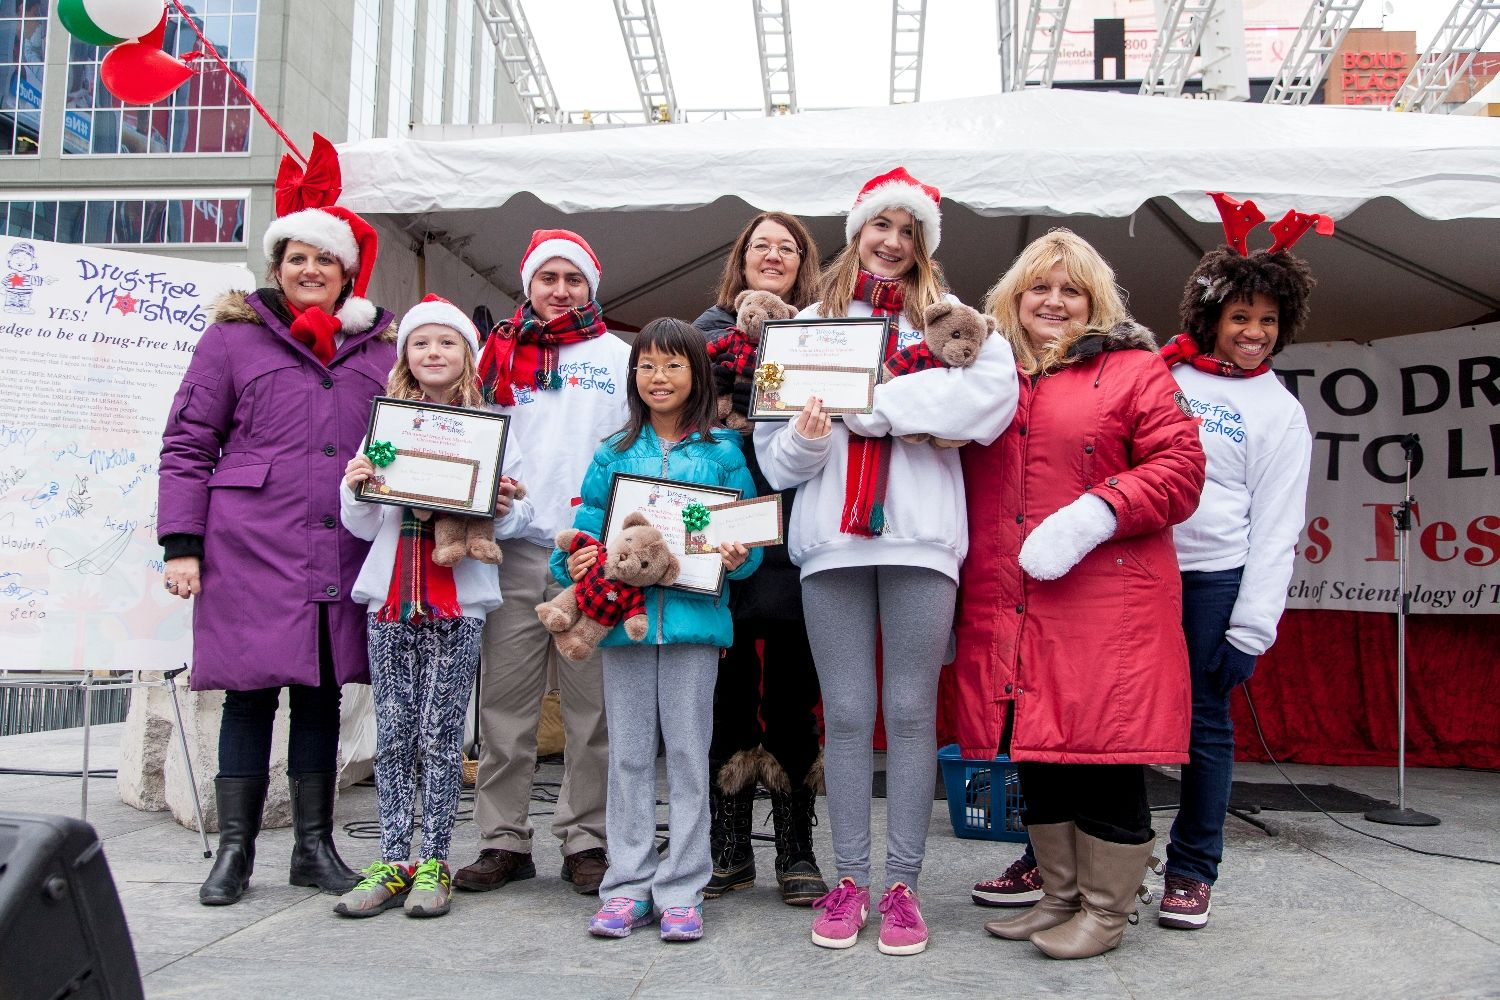 Advanced English Essays Winners Of The Annual Drugfree Marshals Essay Contest On Stage In  Downtown Toronto At The Th Annual Drugfree Marshals Christmas Festival Essay Of Health also English Essay Writing Examples Drugfree Marshals Toronto Th Annual Say No To Drugs Say Yes To  Higher English Reflective Essay